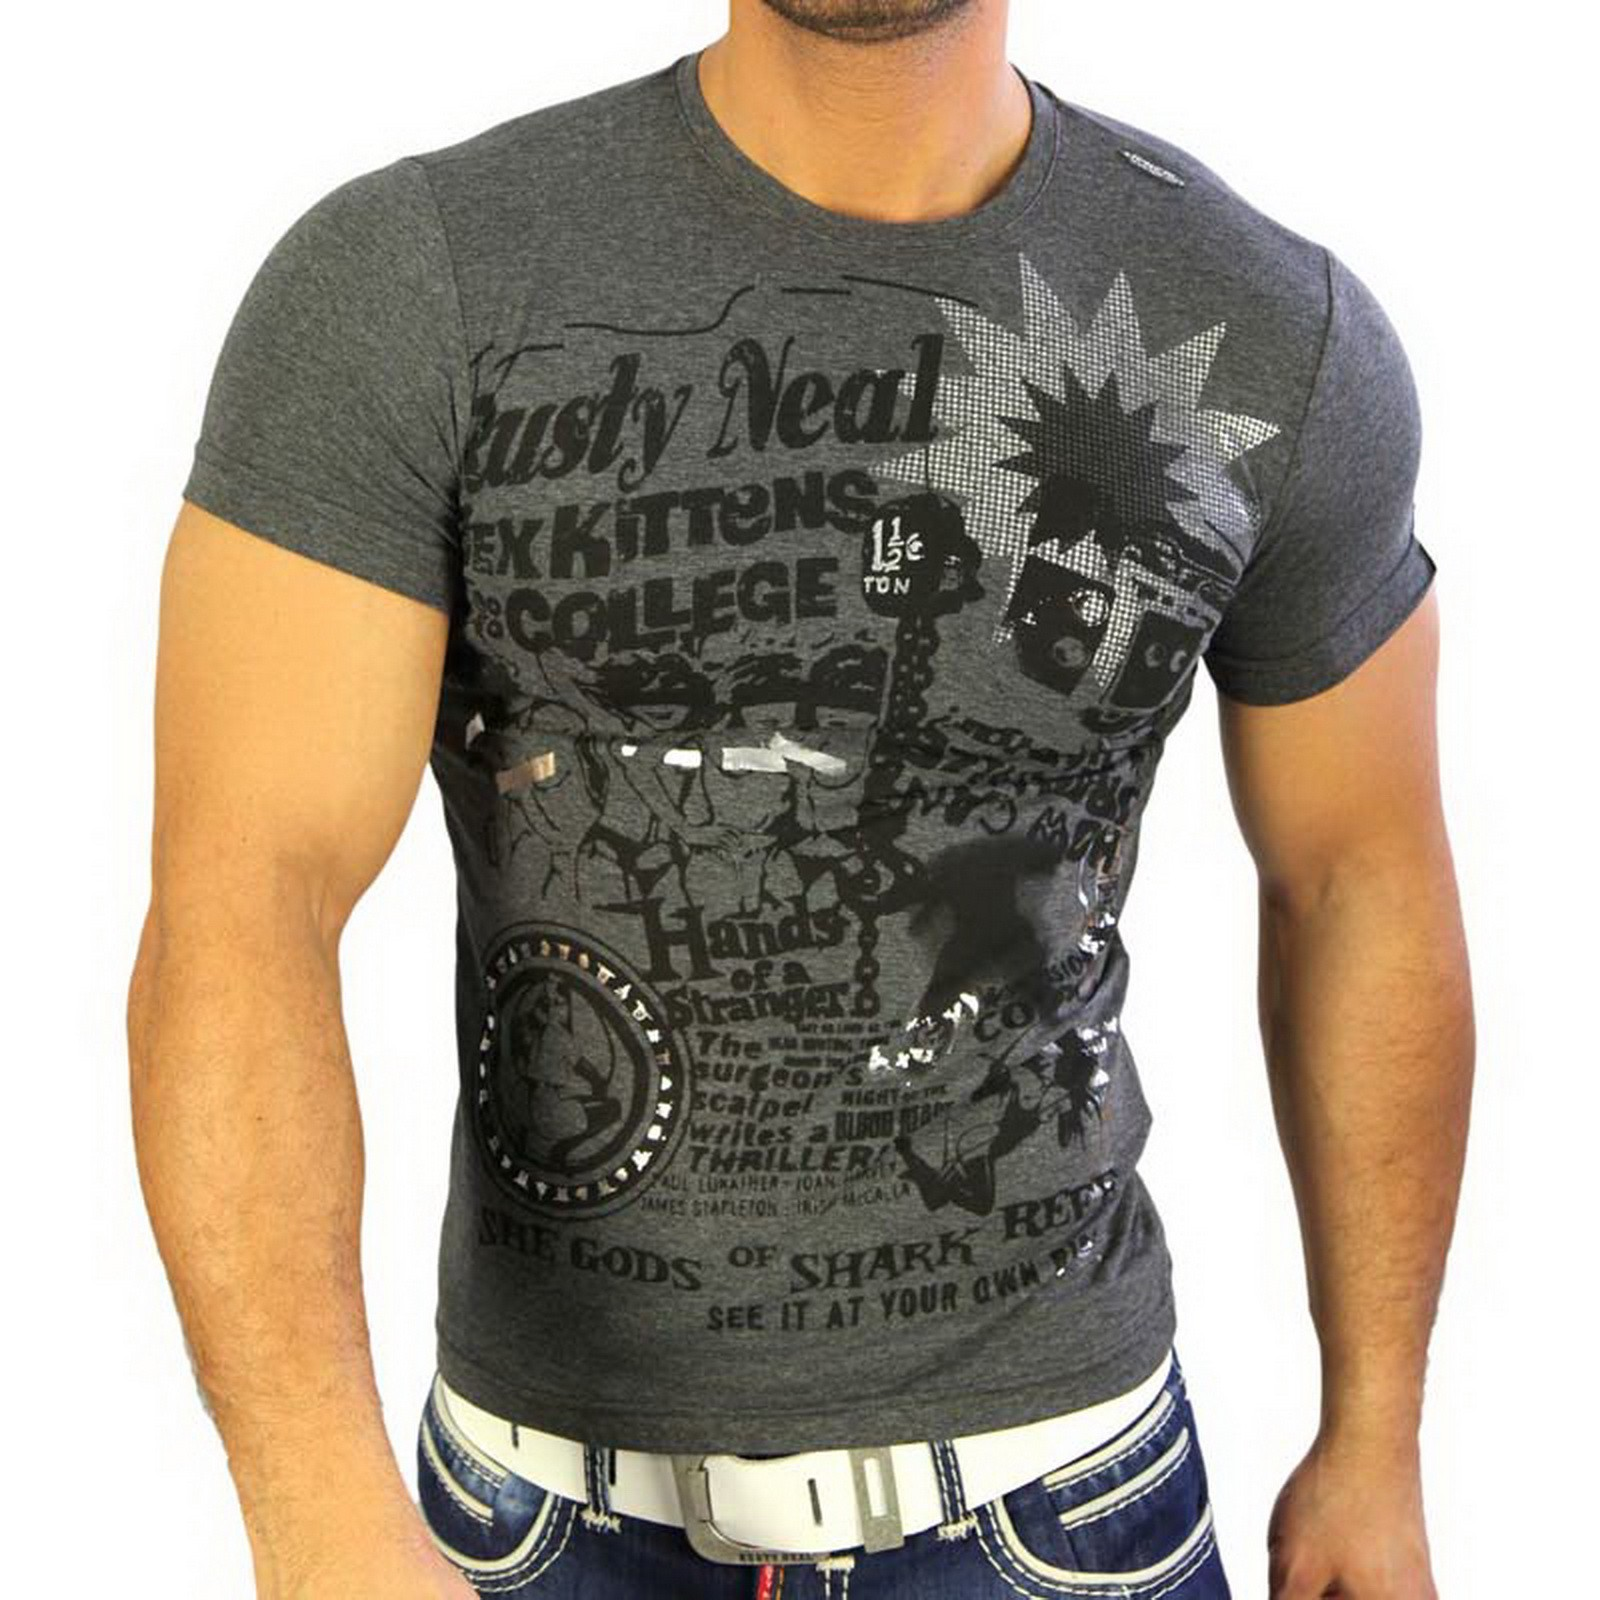 T-Shirt 4315 Strass Style Rusty Neal